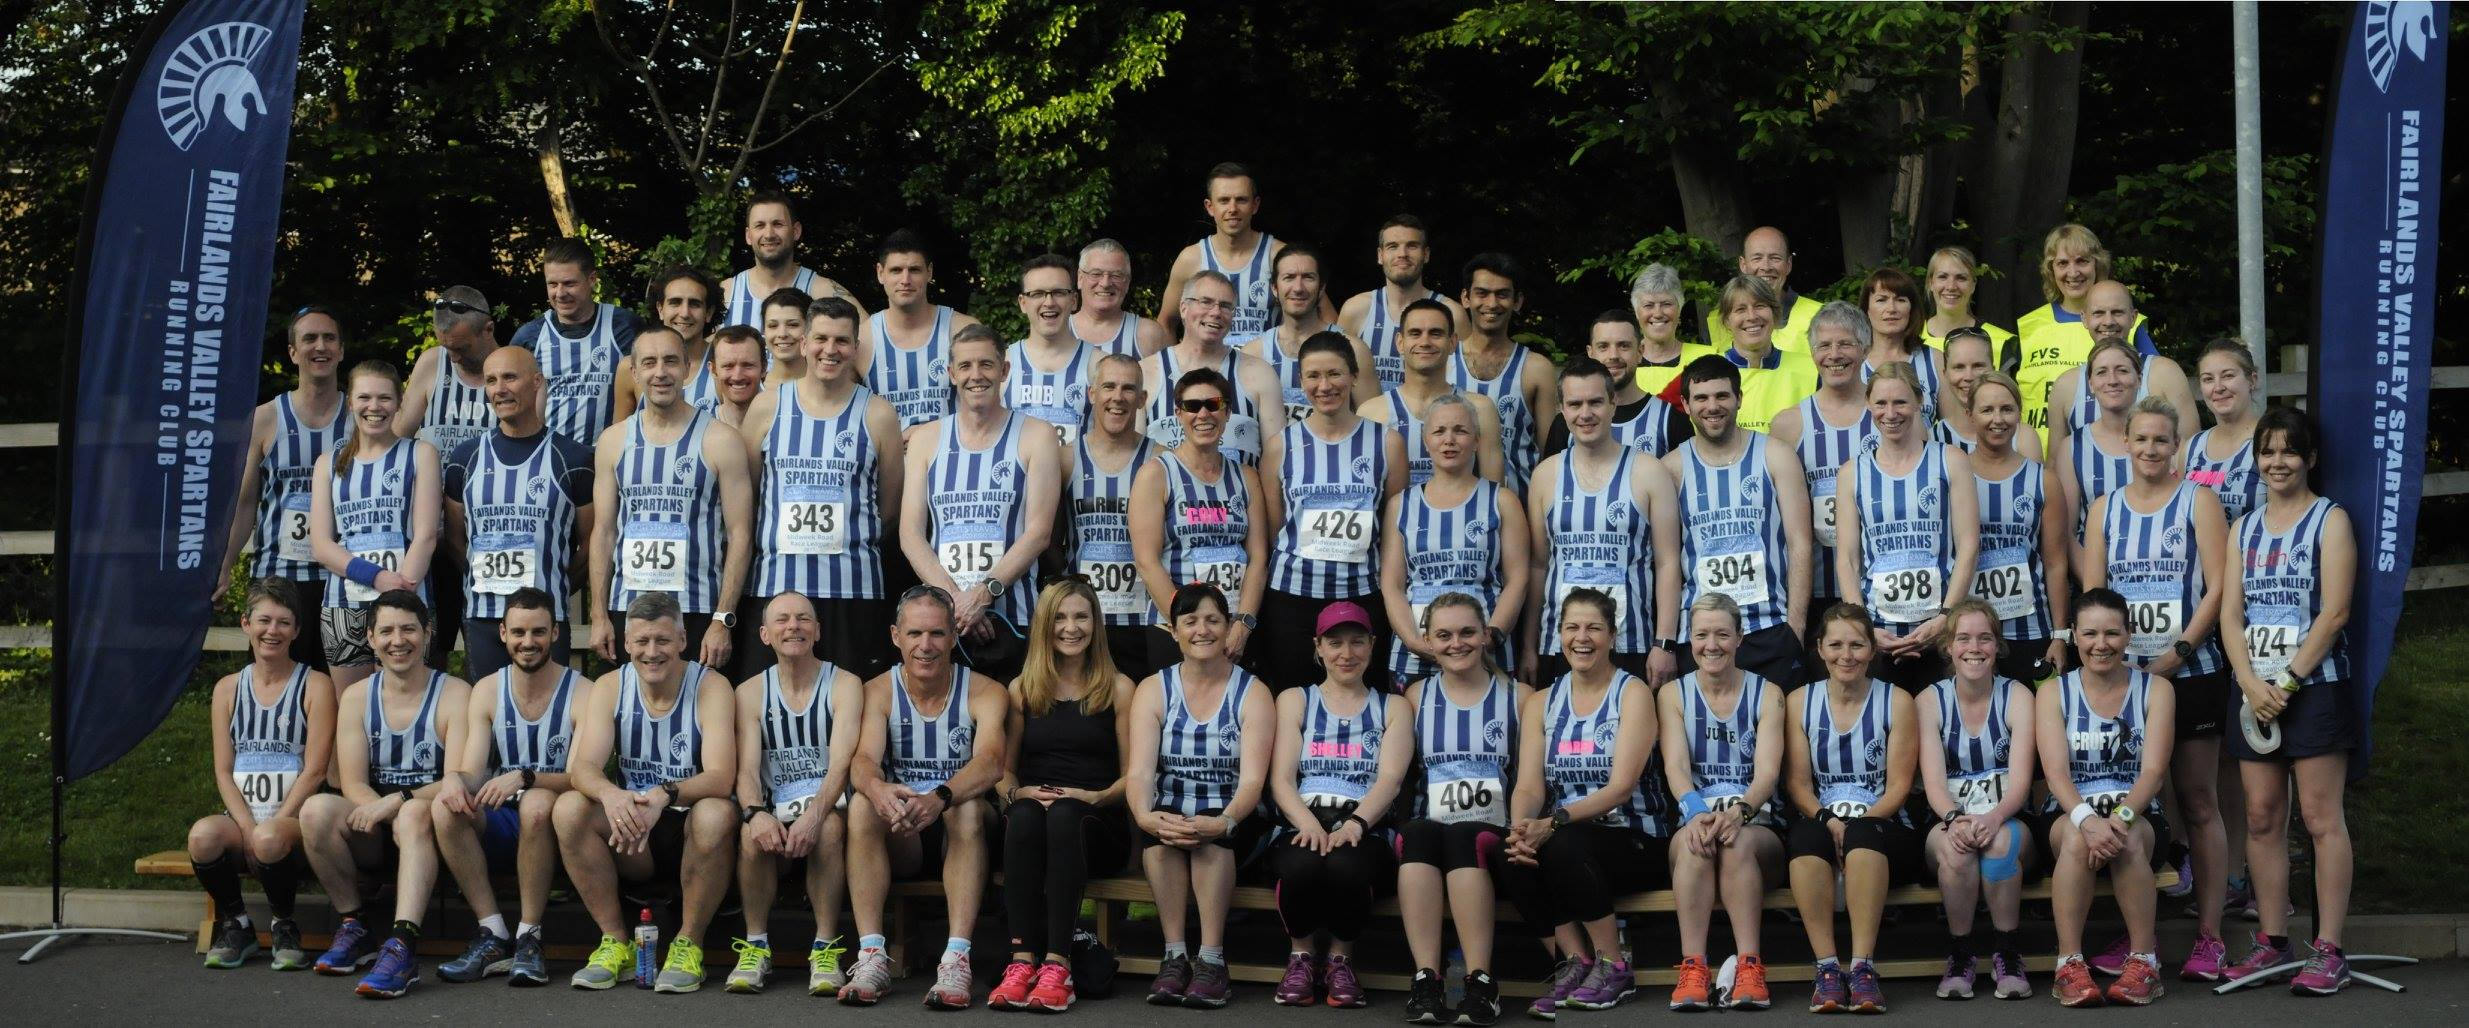 The Spartans at Stevenage 10k 2017